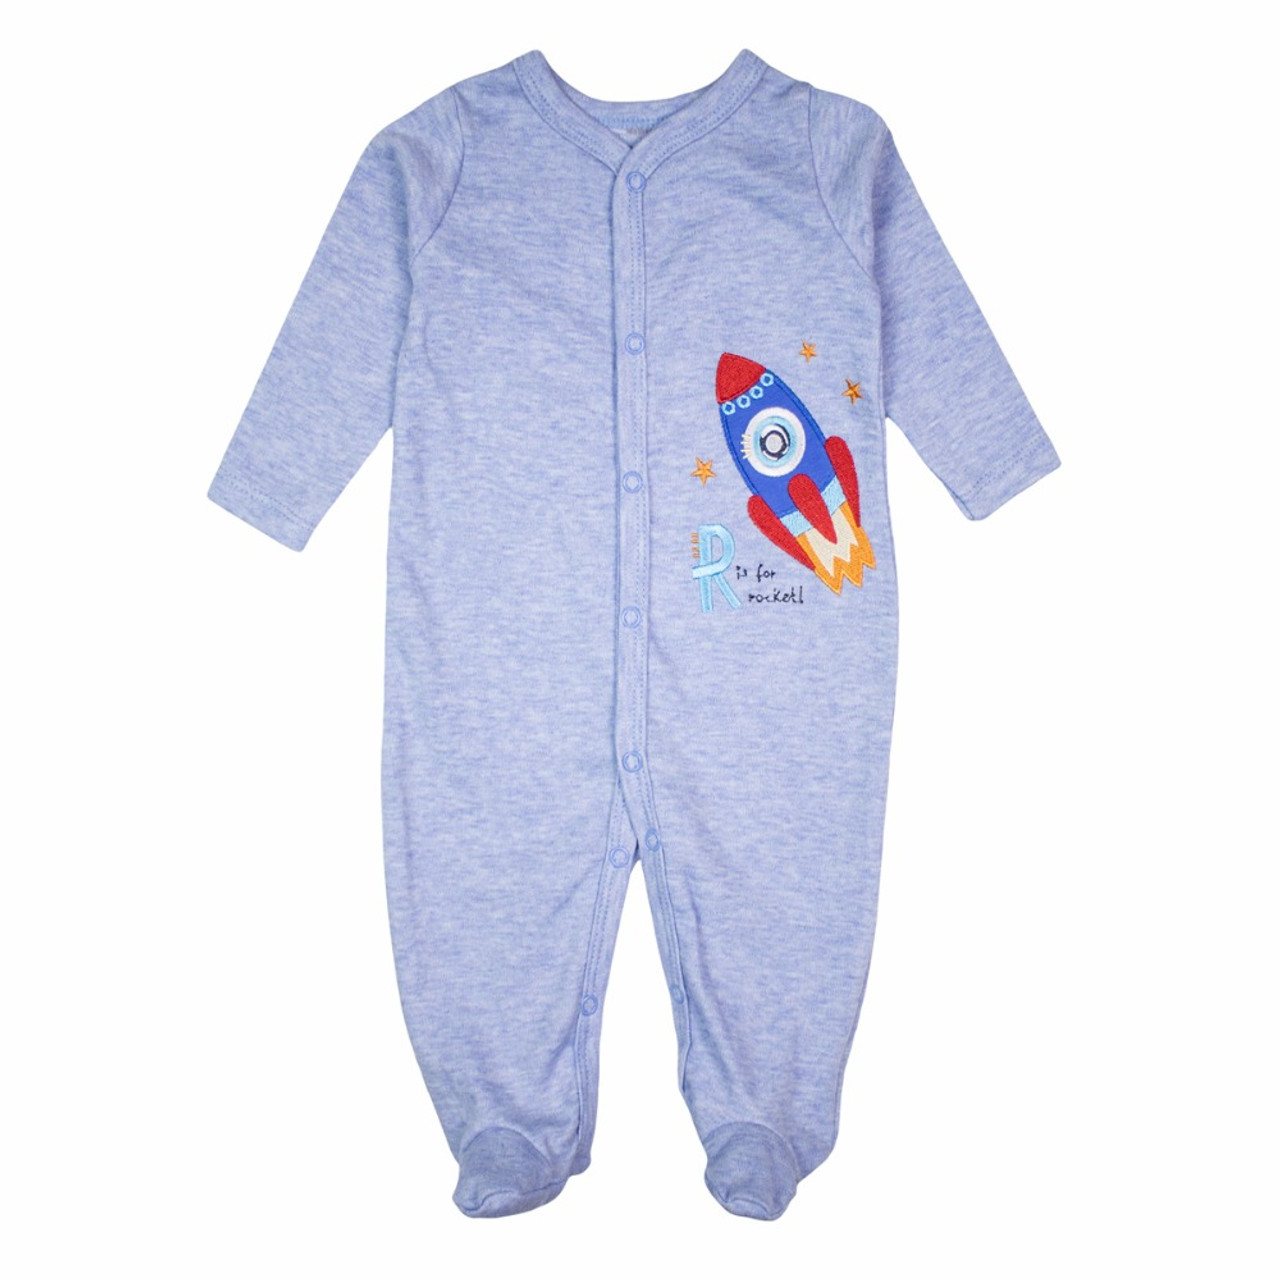 39d06b75452a 3 Pcs lot Baby Romper Long Sleeves 100% Cotton Comfortable Baby ...